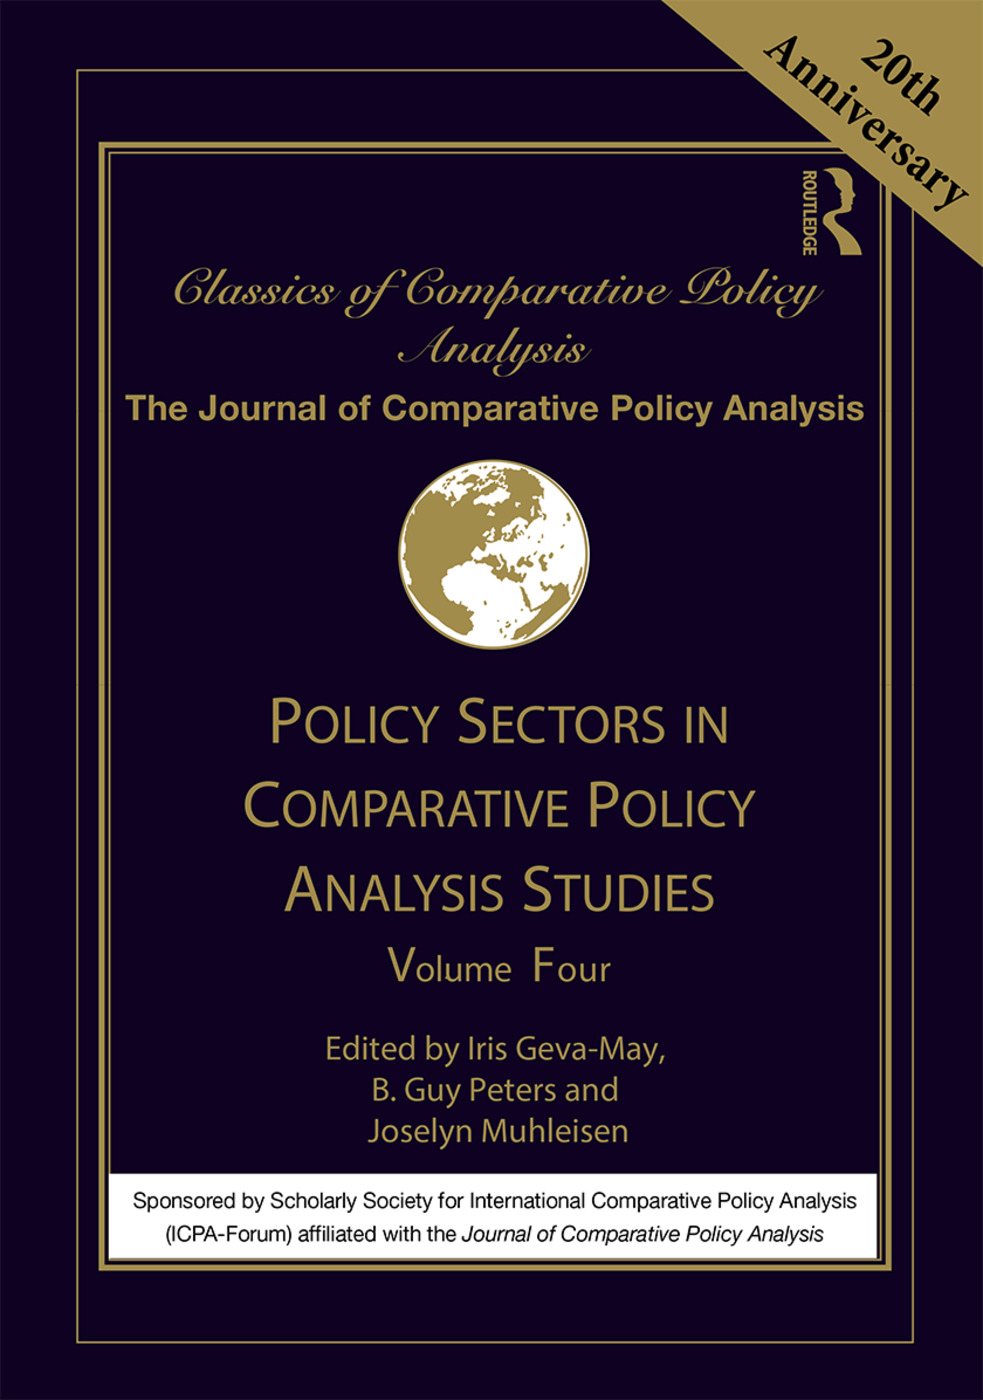 Policy Sectors in Comparative Policy Analysis Studies: Volume Four book cover